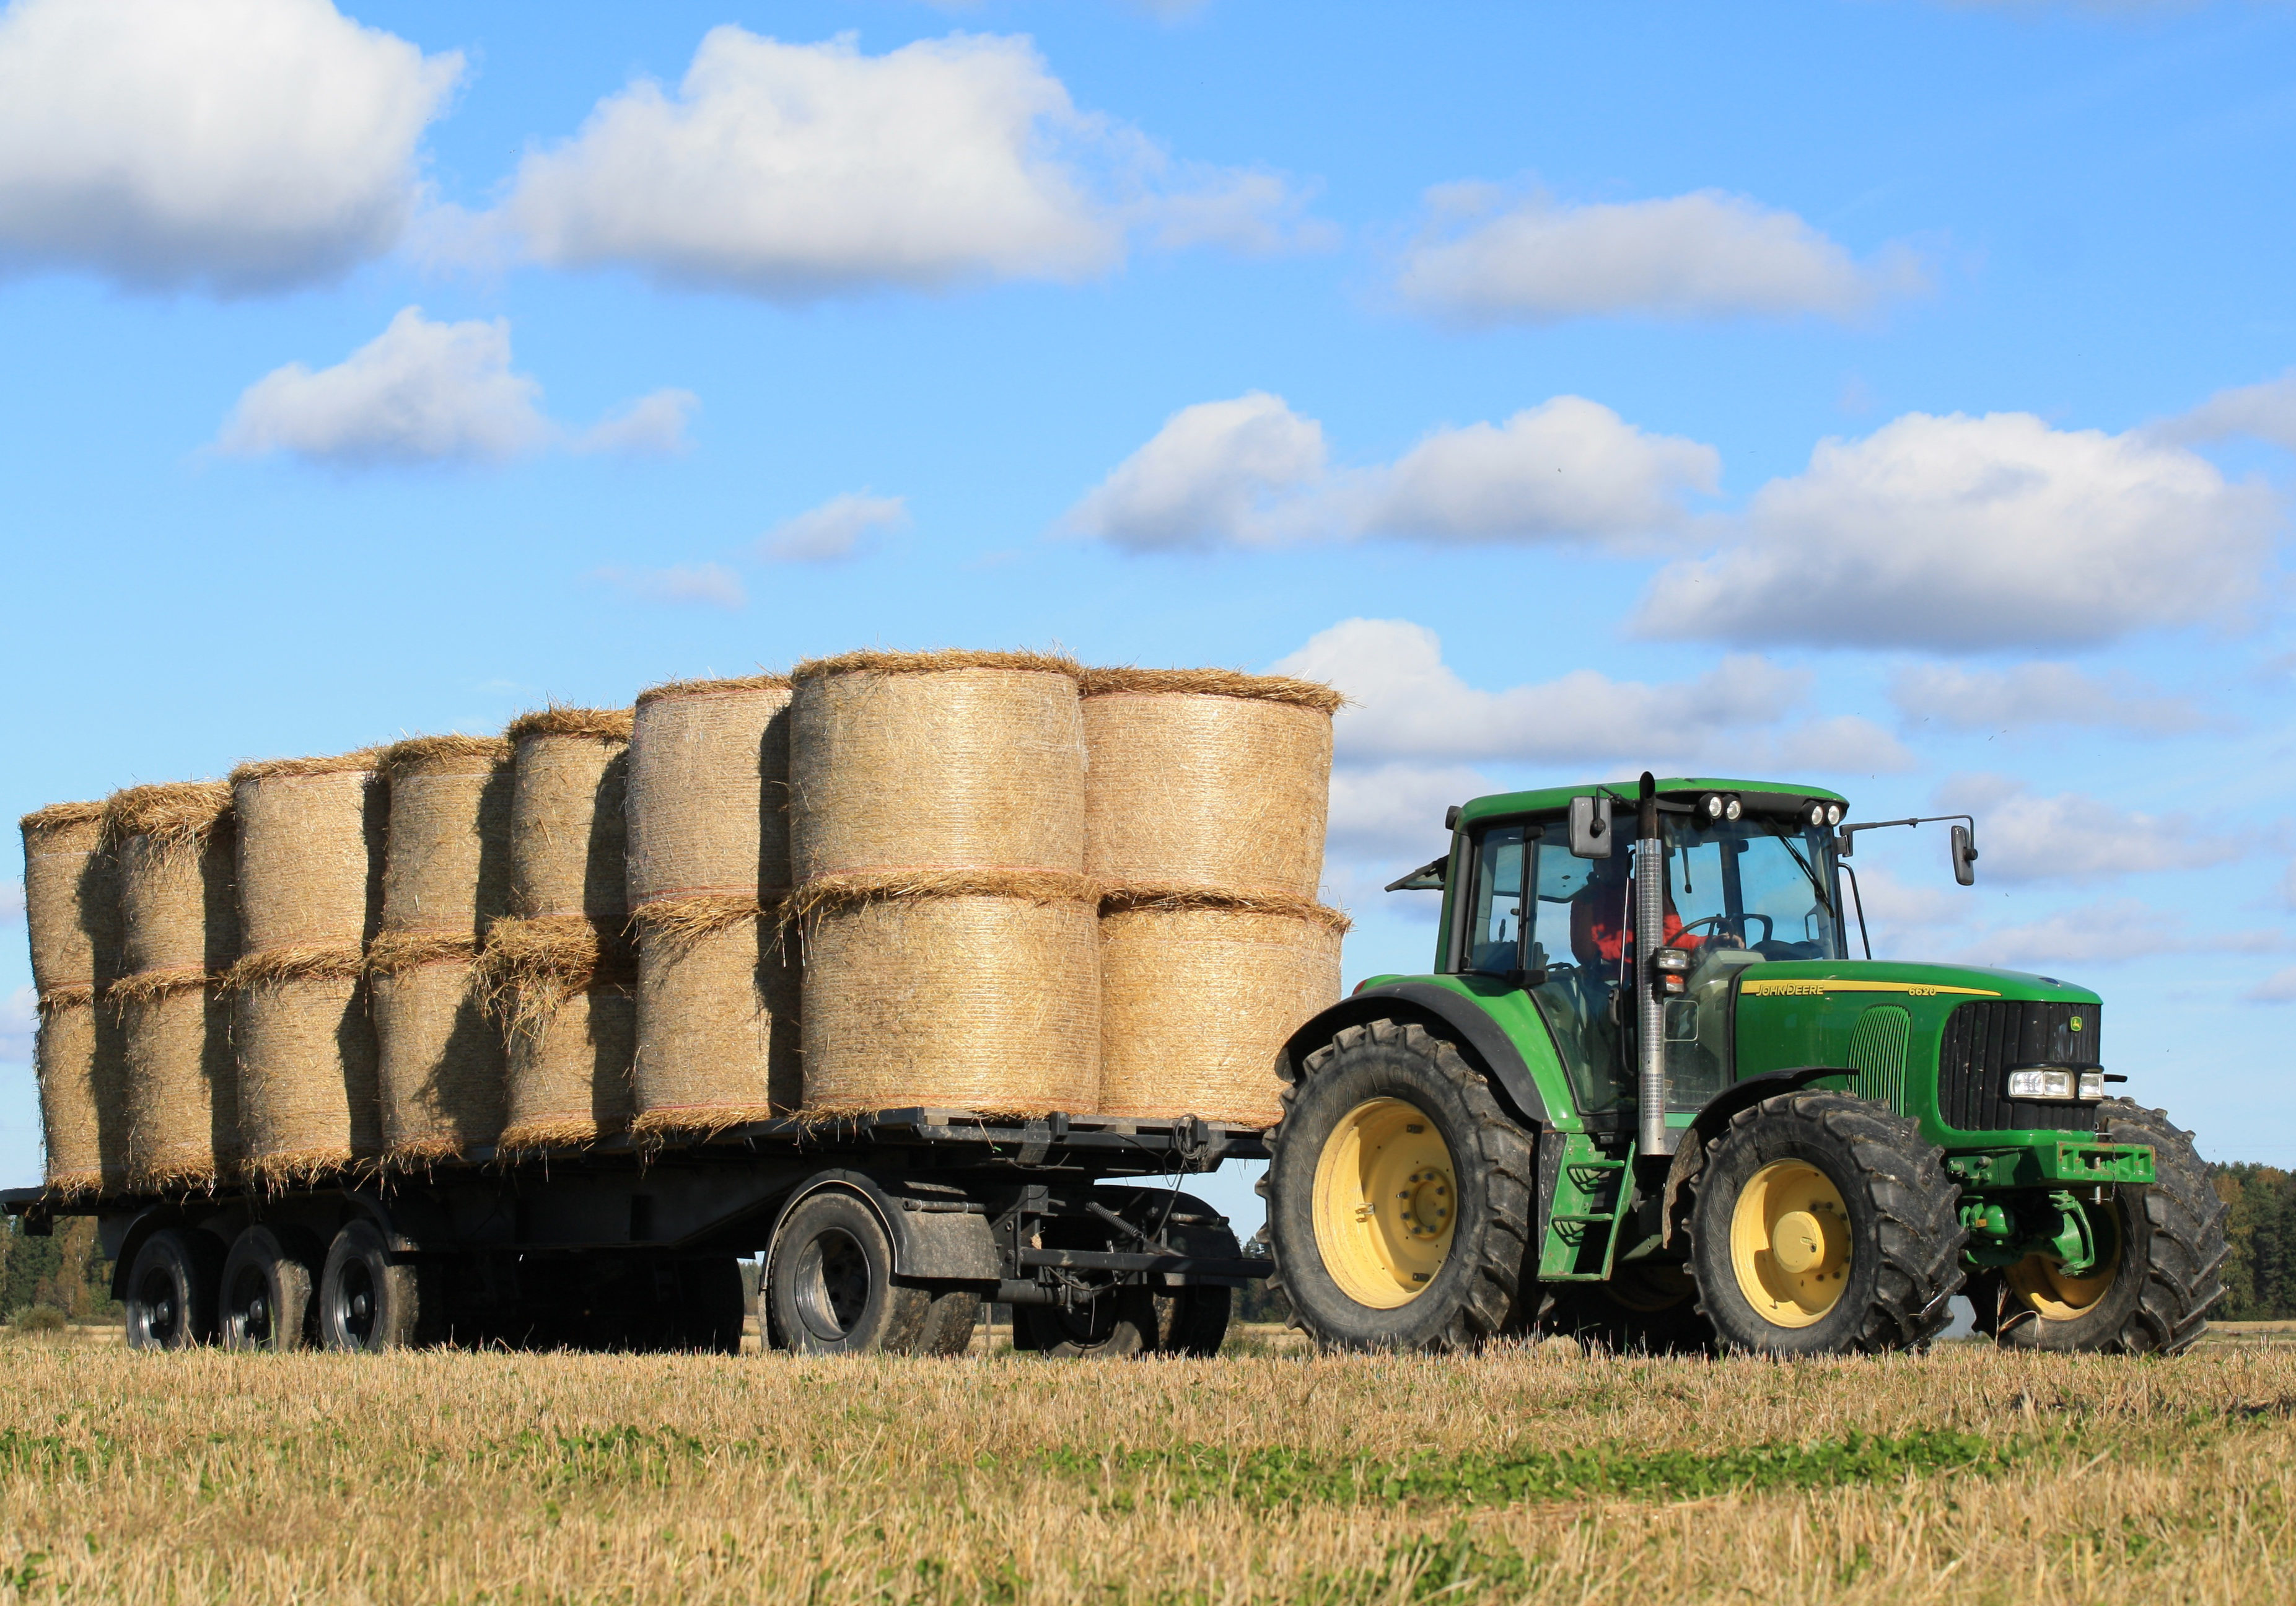 hay-tractor-field-farm-transport-harvest-1202417-pxhere.com